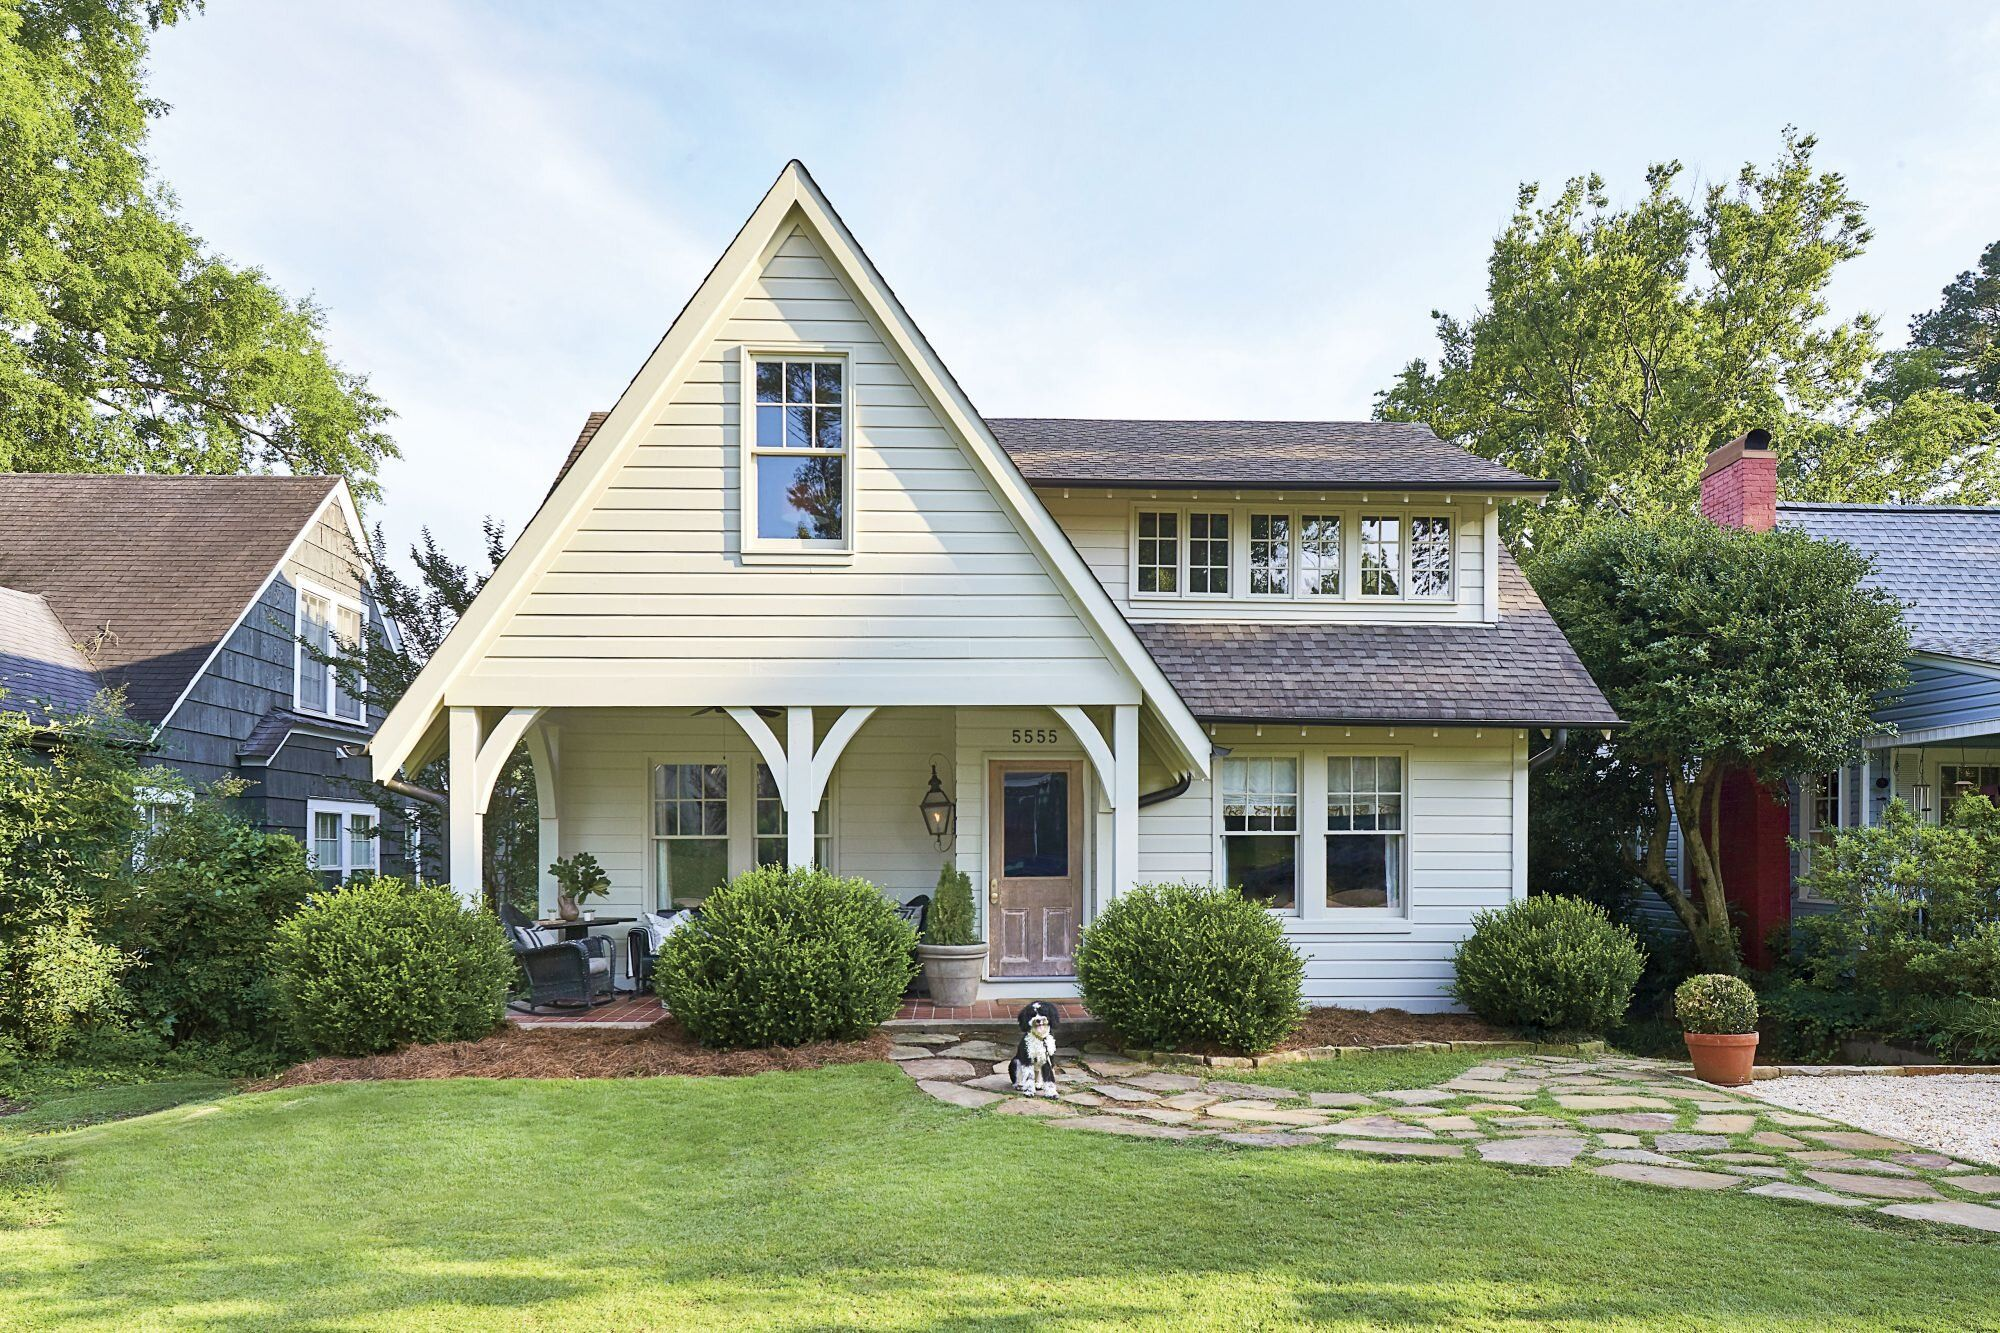 How To Pick The Right Exterior Paint Colors In 2020 House Exterior House Paint Exterior House Painting